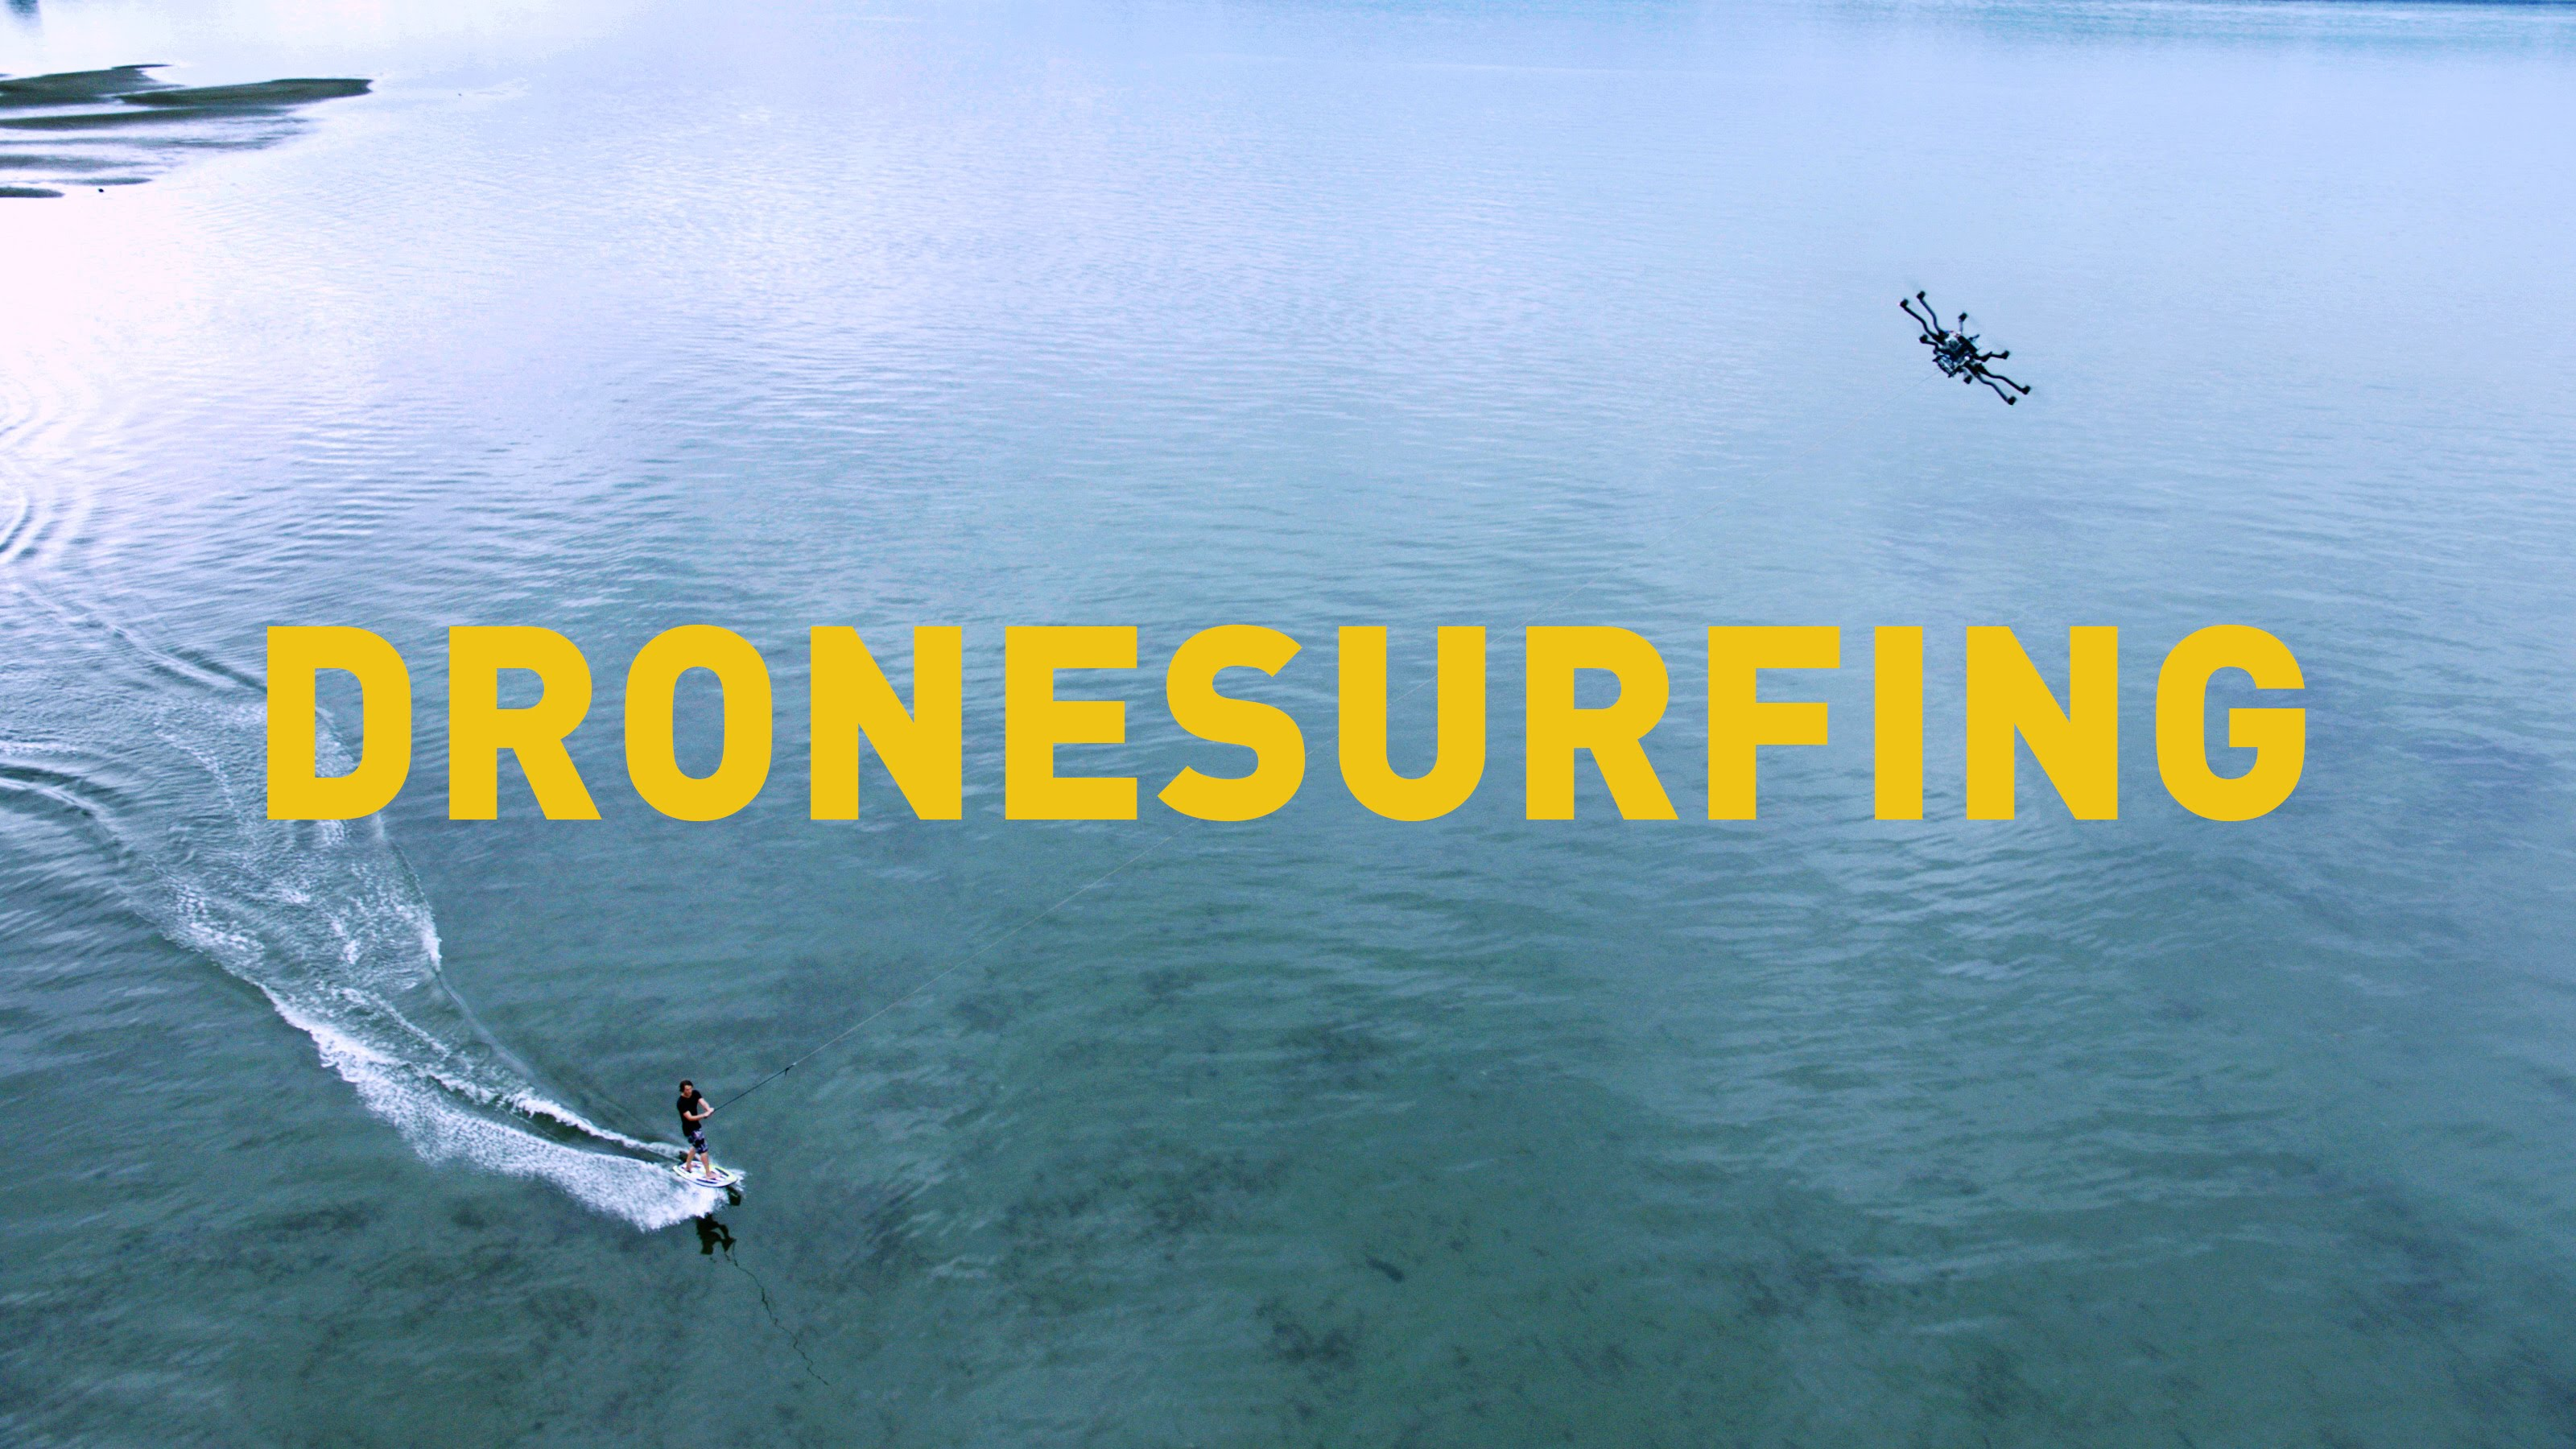 3 Unusual Uses for Drones